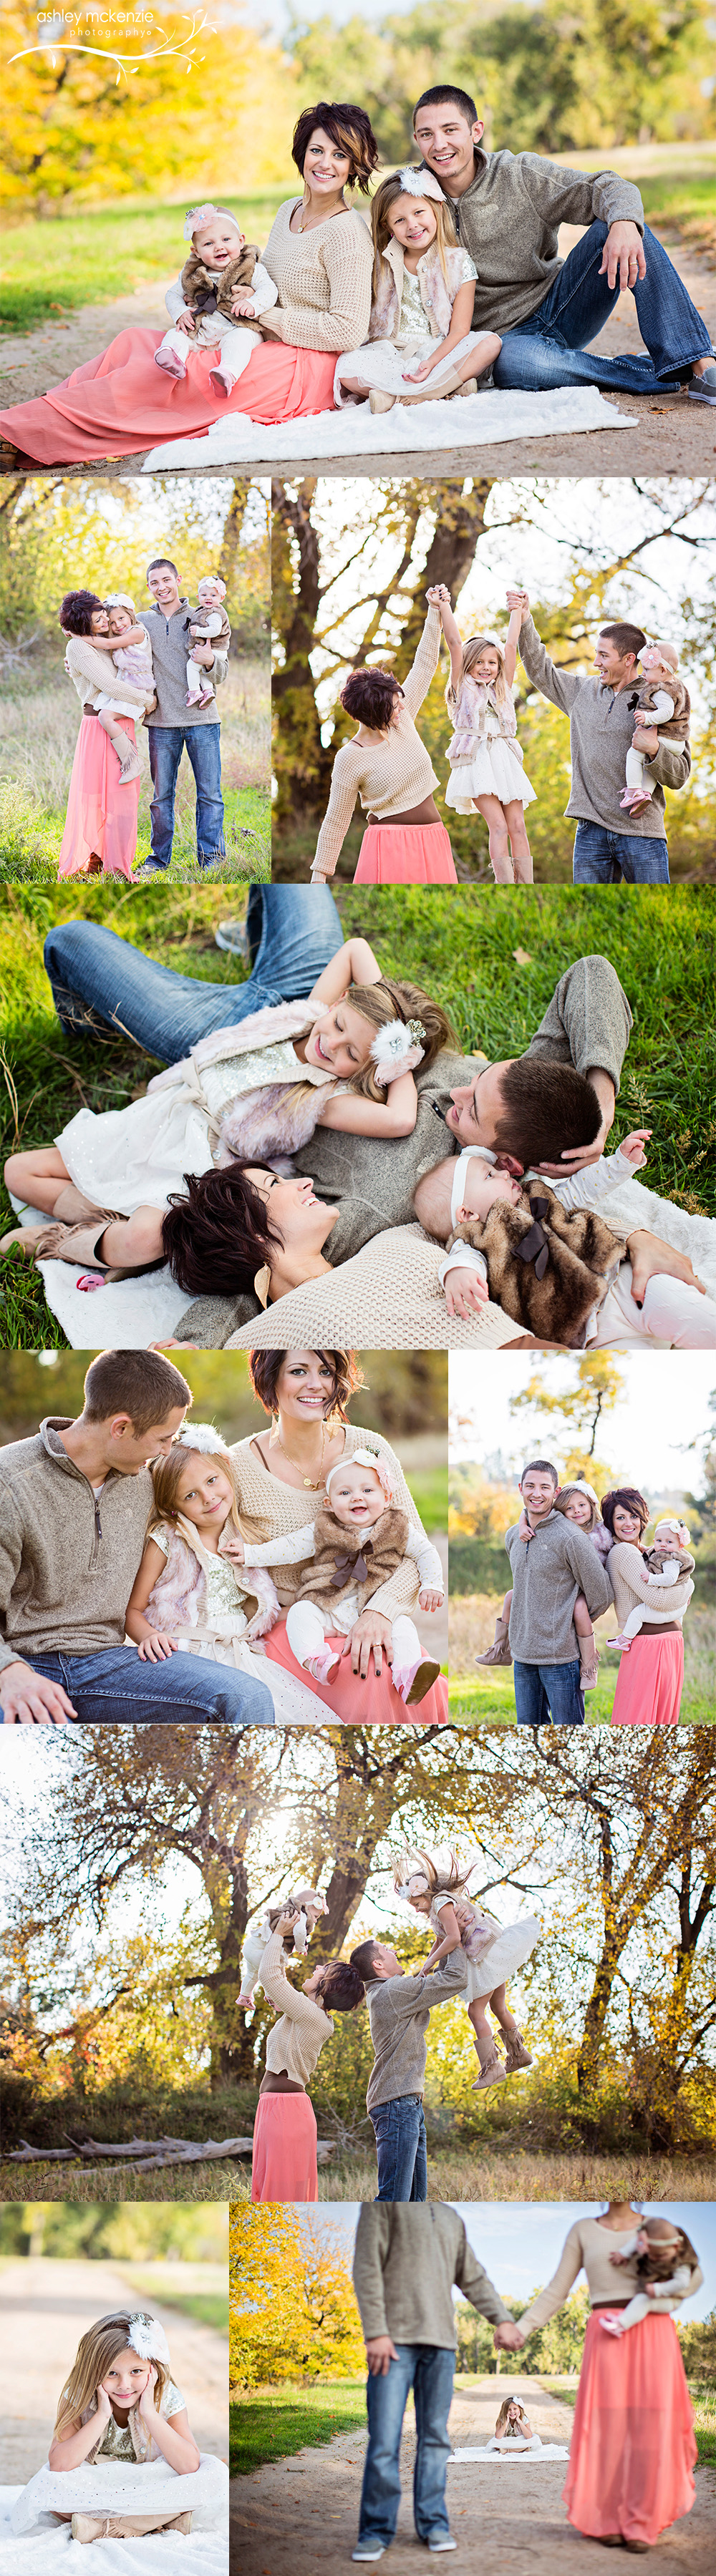 Family Photography by Ashley McKenzie Photography in Windsor, CO